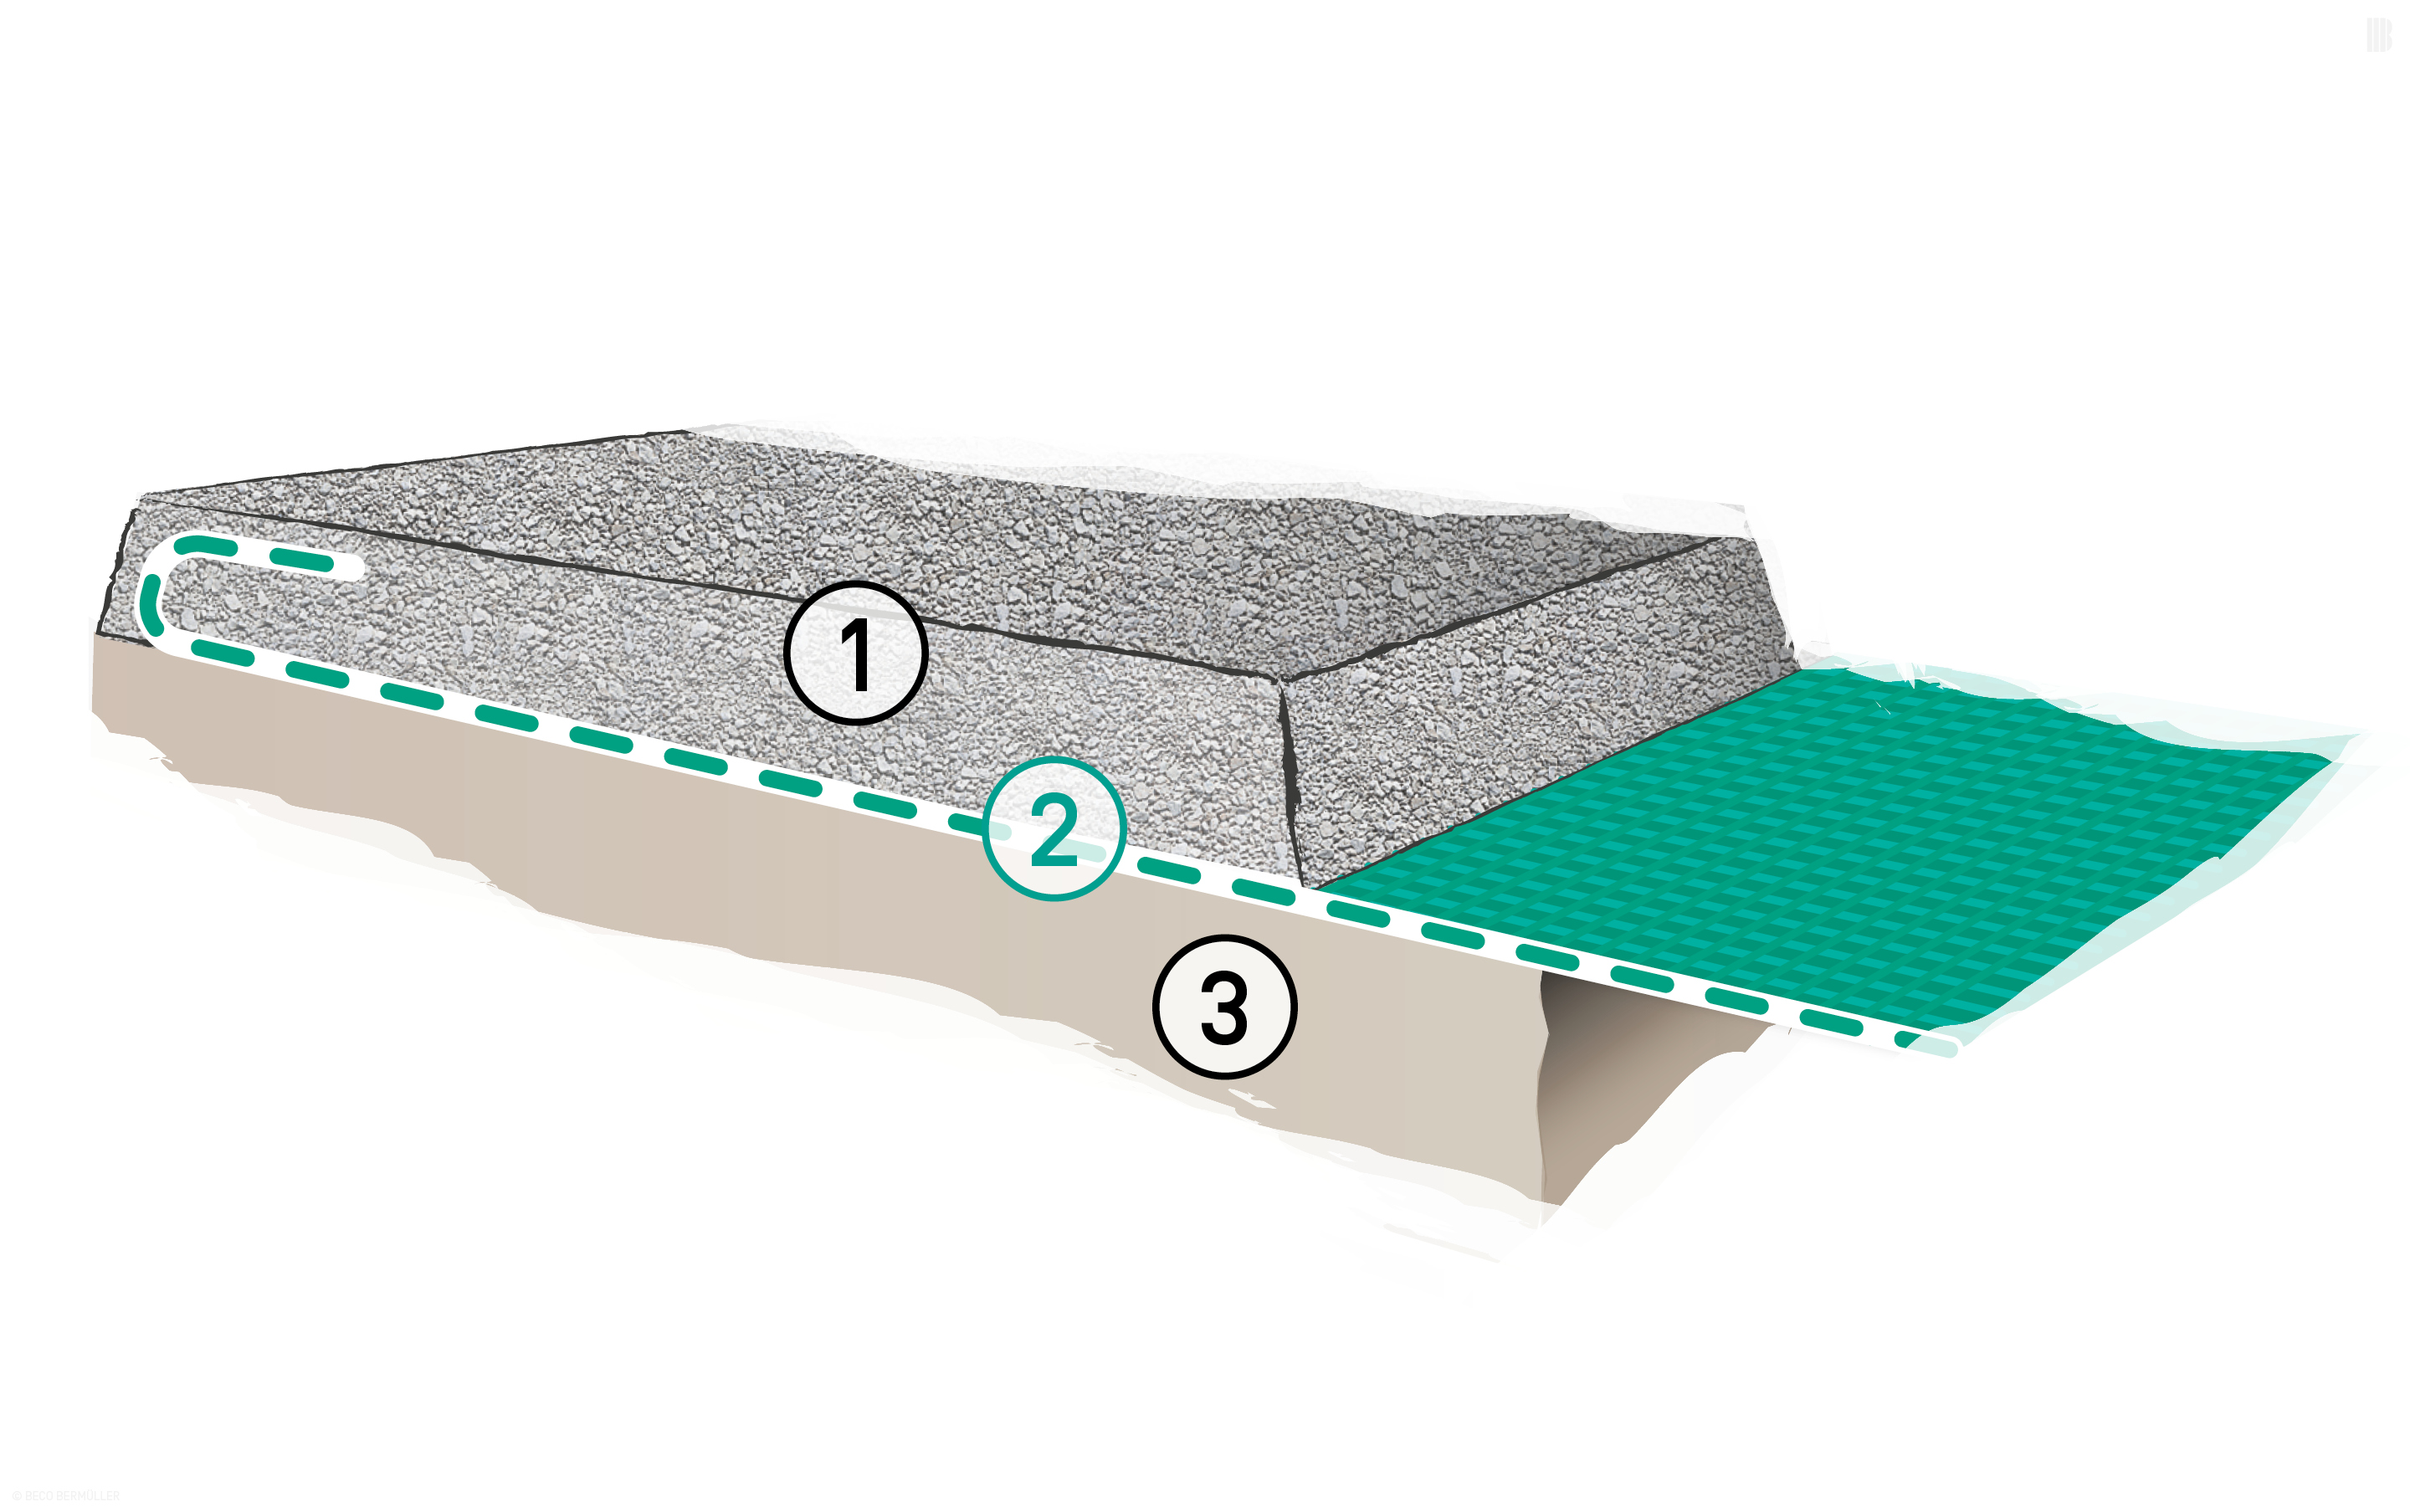 Reinforcing layer under roads with unbound surfaces (construction site access roads, service roads and access routes for site development): 1. Unbound surface layer | 2. BEFORCE Woven Geotextiles | 3. Subsoil with poor load-bearing capacity